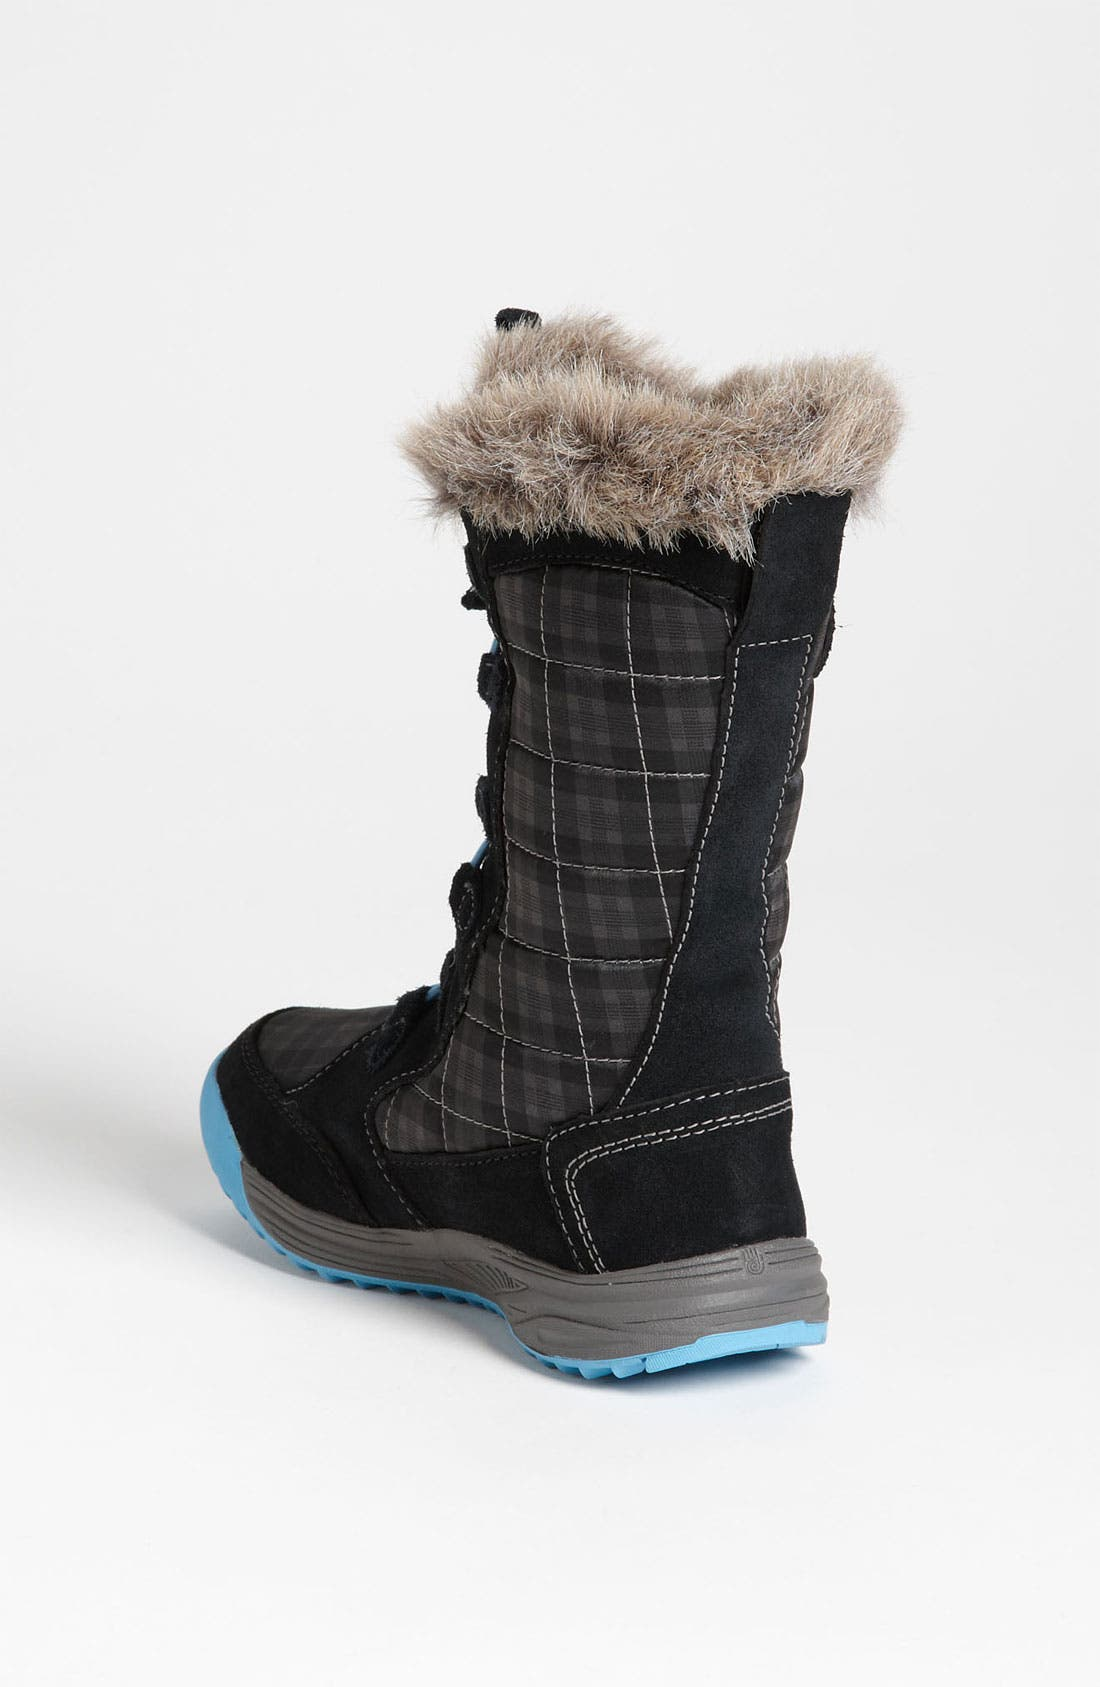 Alternate Image 2  - Teva 'Lenawee' Waterproof Boot (Toddler, Little Kid & Big Kid)